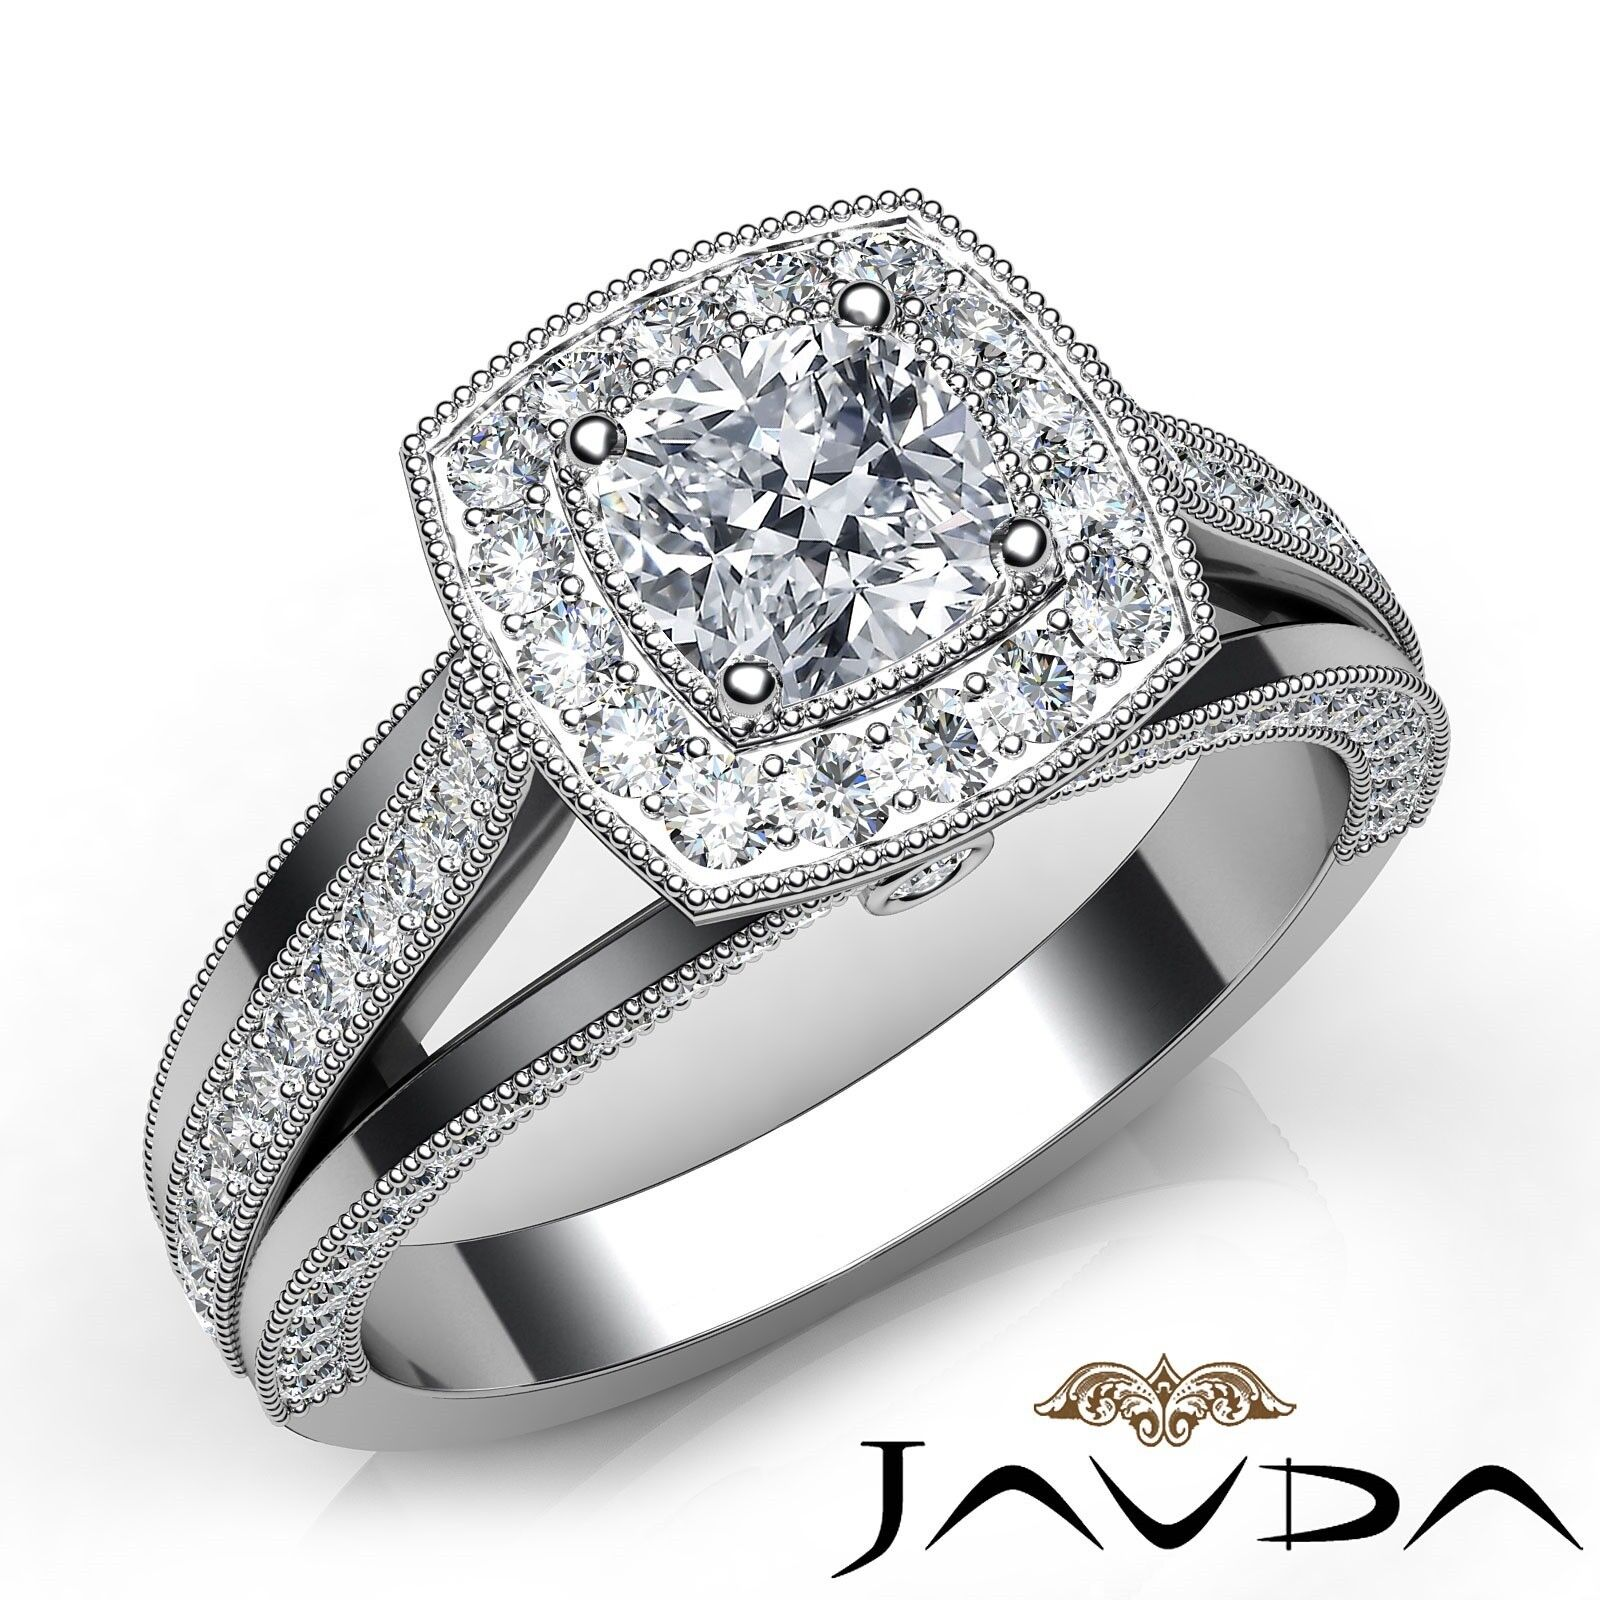 1.8ctw Milgrain Halo Pave Bezel Cushion Diamond Engagement Ring GIA H-VS1 W Gold